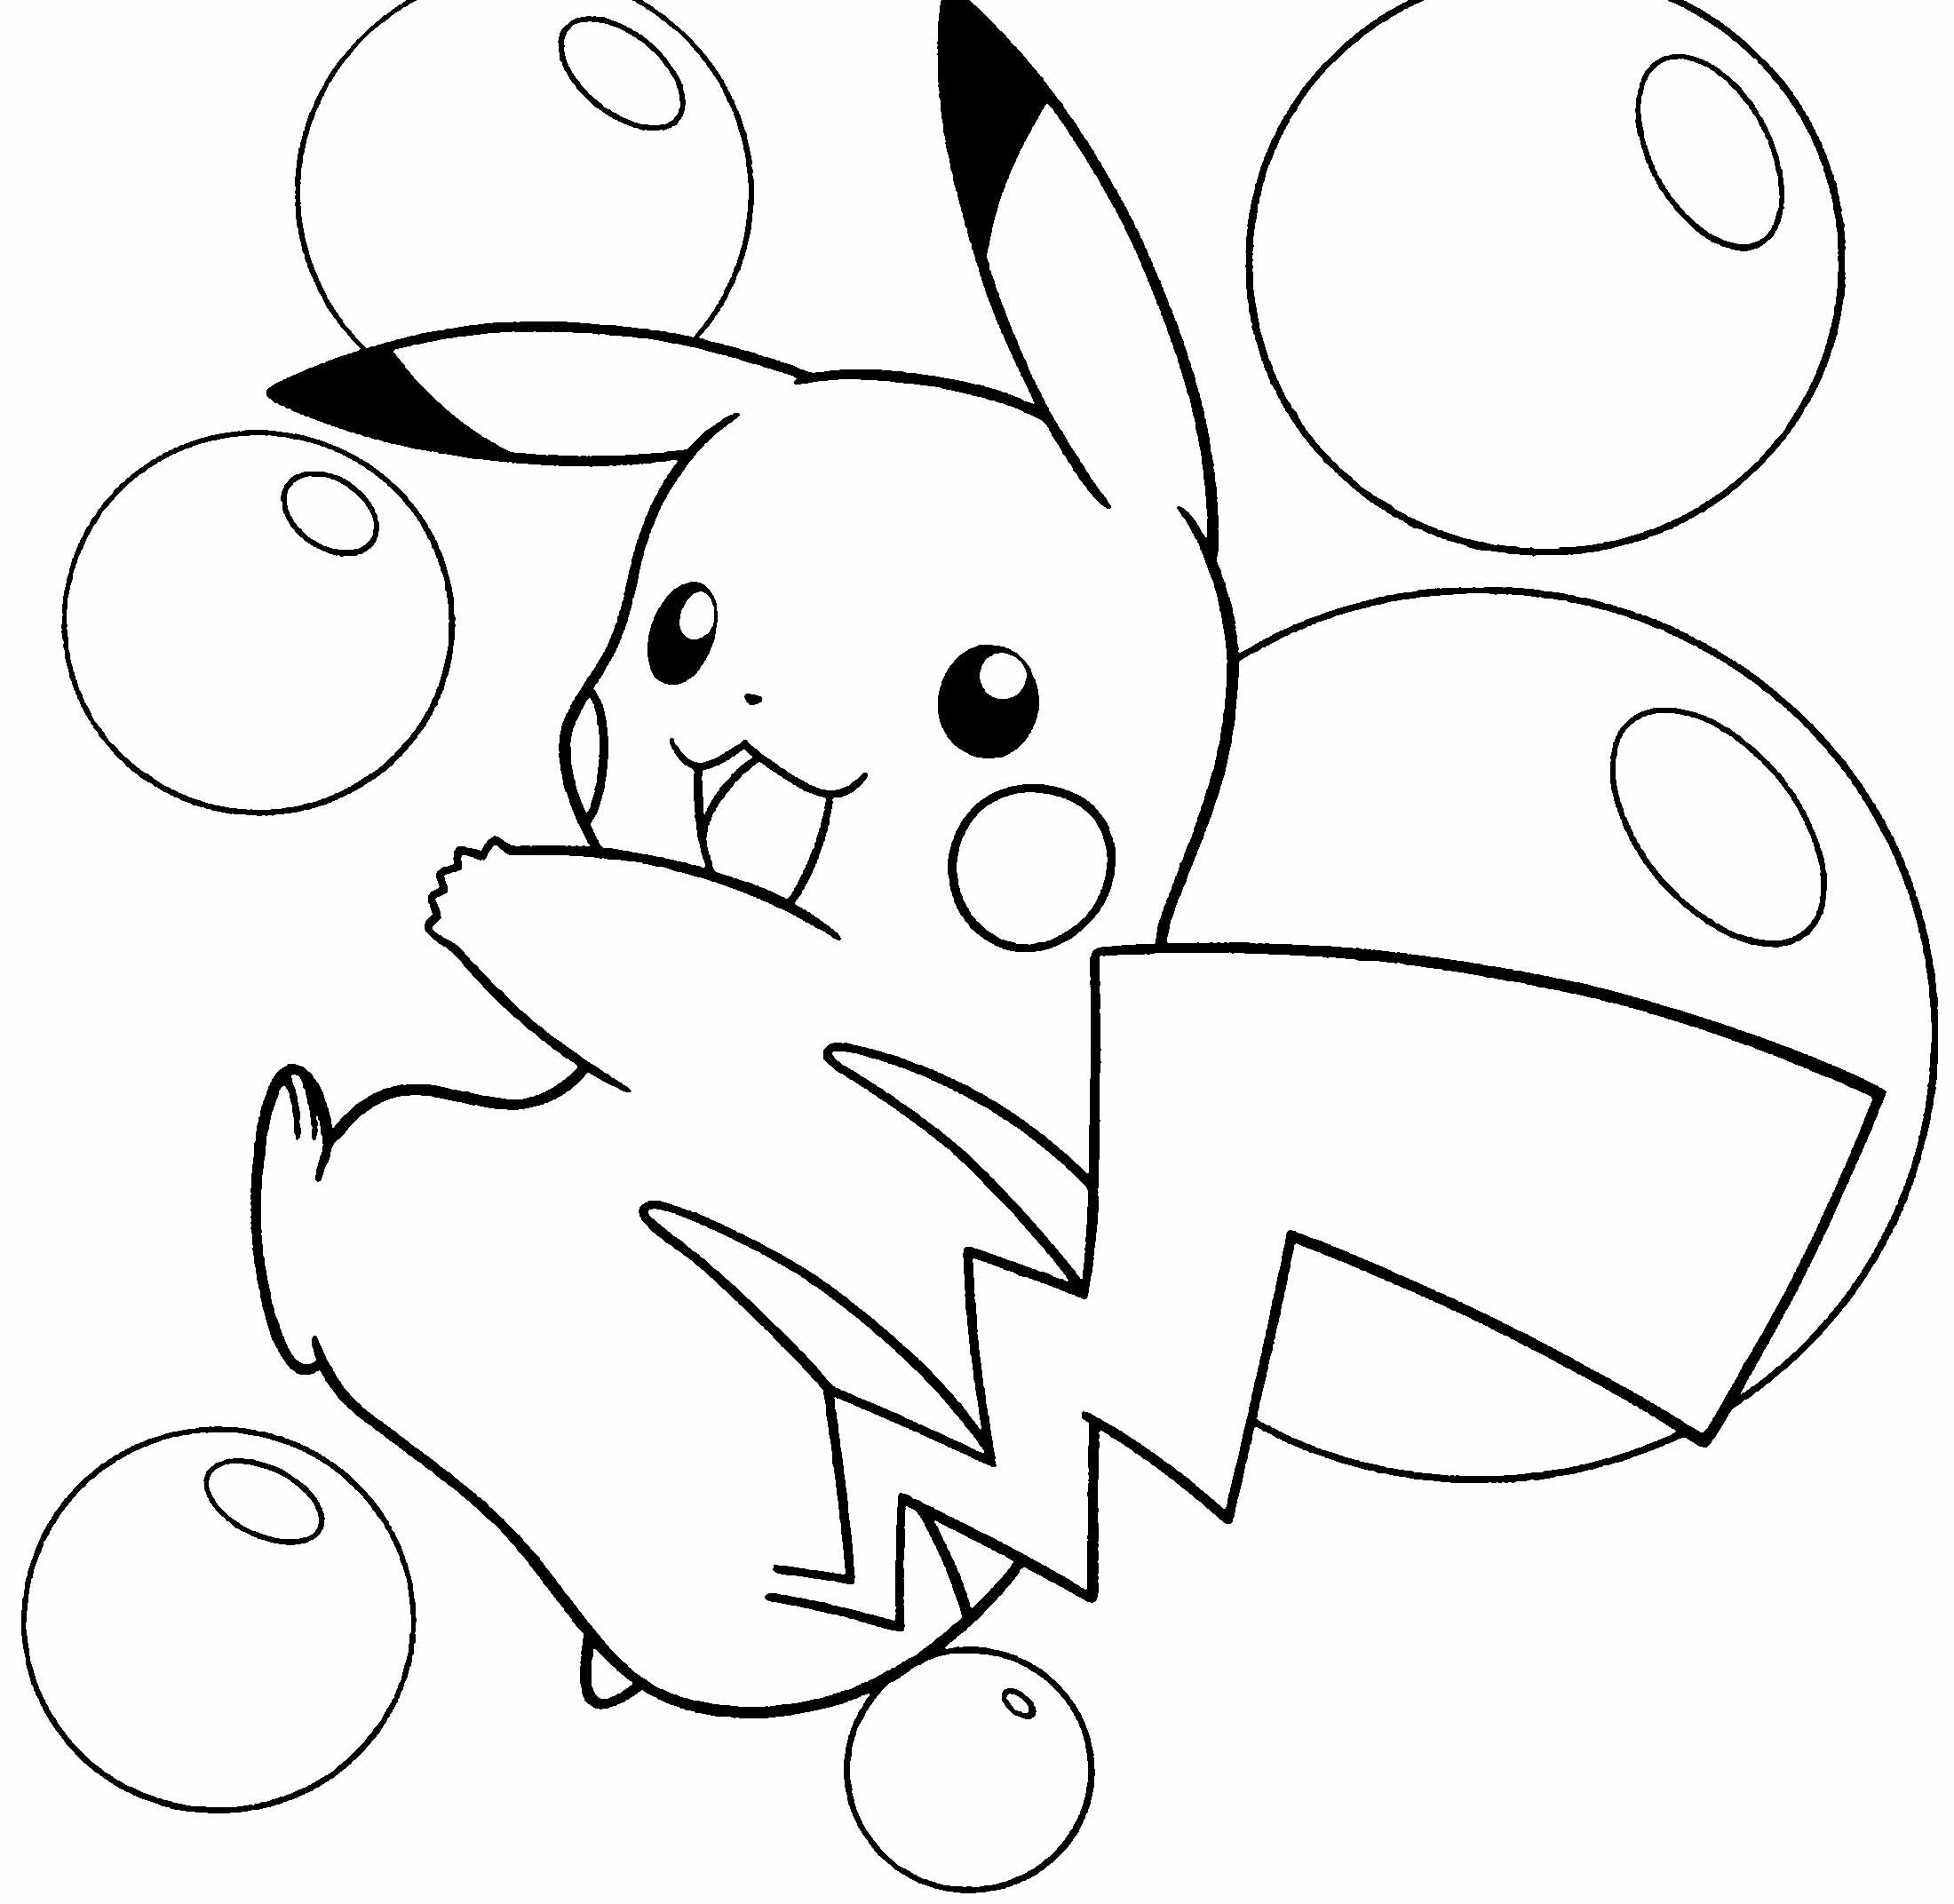 pikachu images for coloring pokémon go pikachu waving coloring page free printable images coloring pikachu for